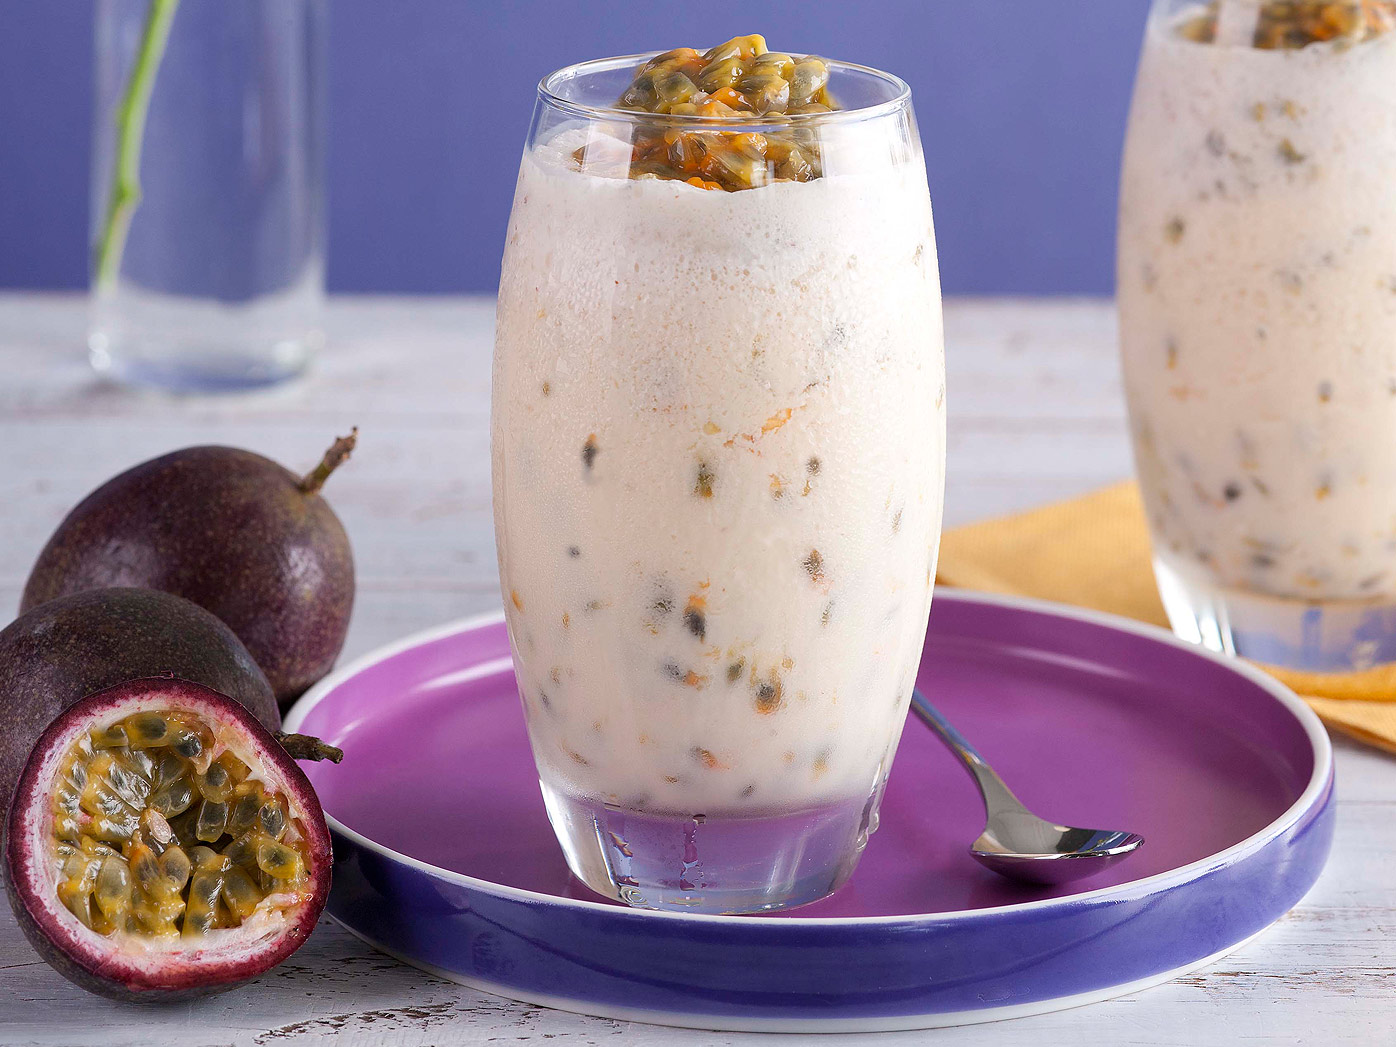 Sammy & Bella's passionfruit and yoghurt smoothie